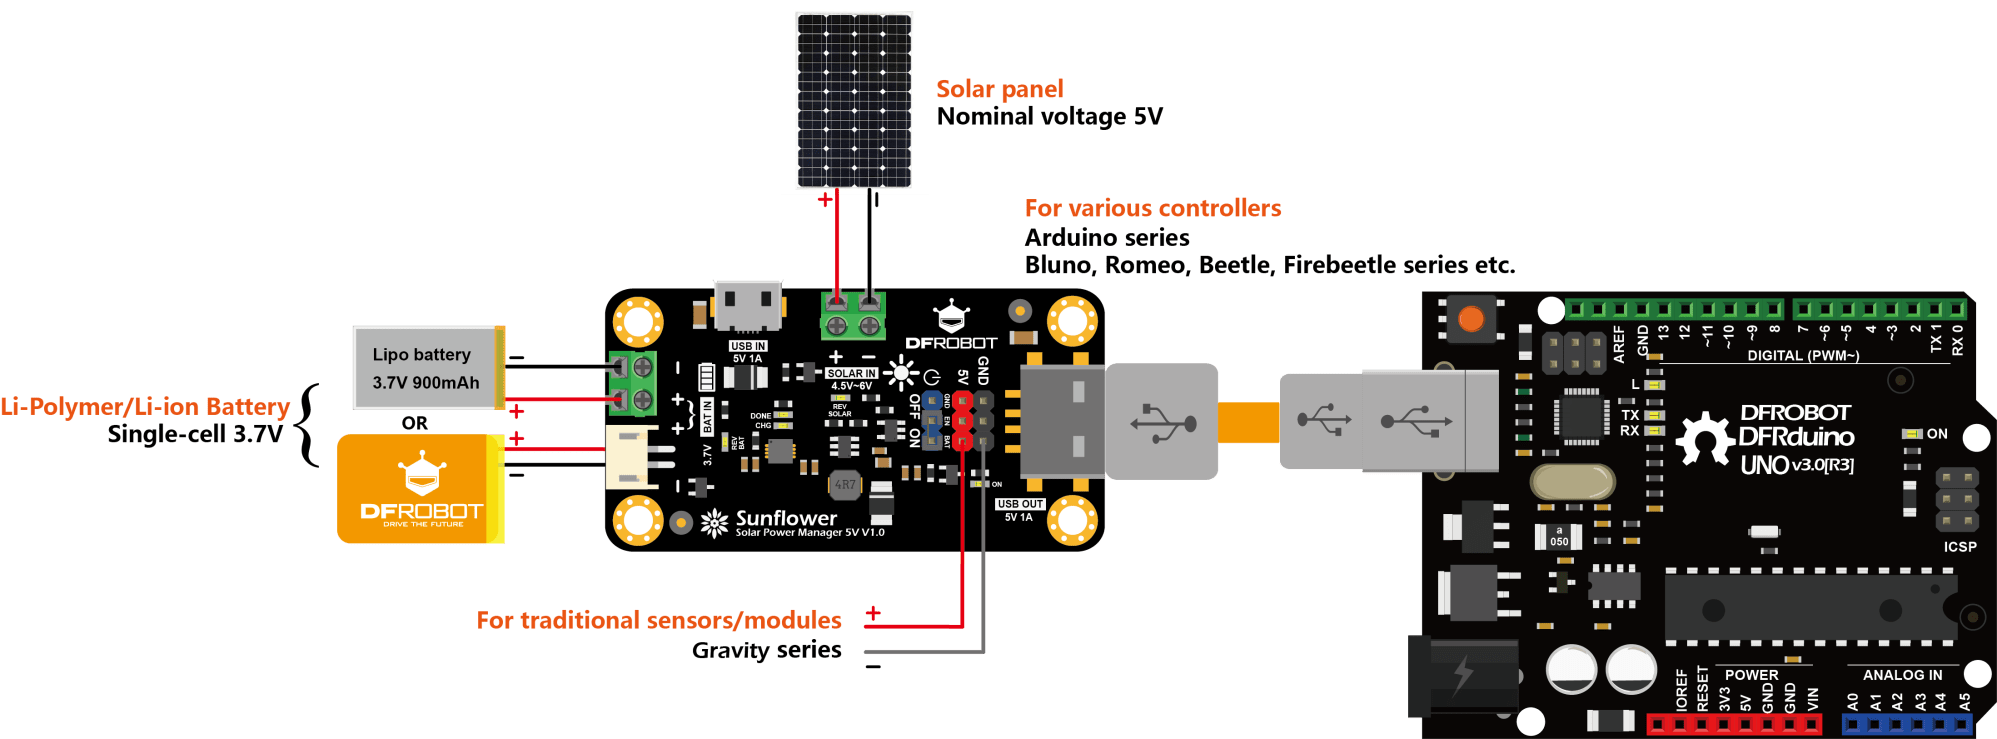 hight resolution of solar powered system